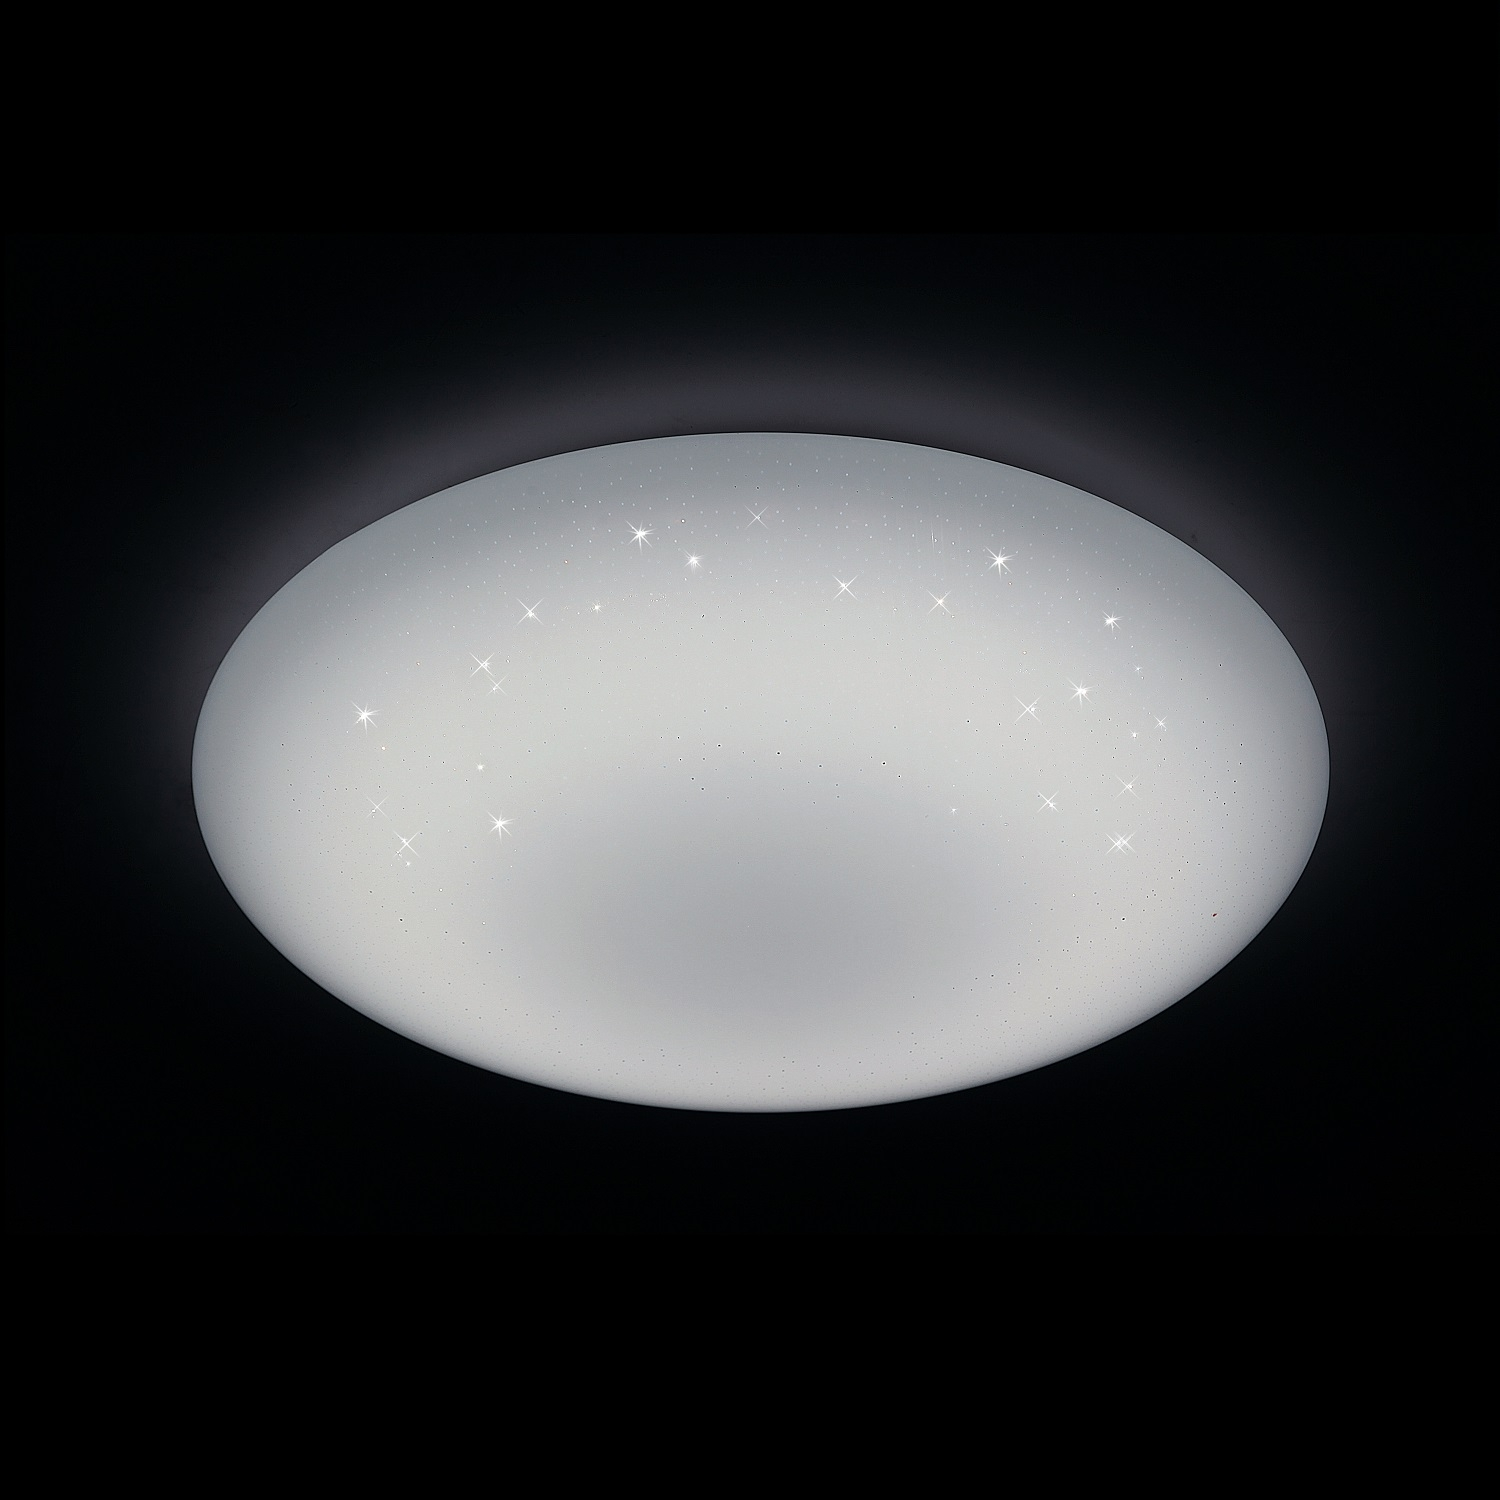 Dalen Dl C415tx Intelligent Eco Led Ceiling Light